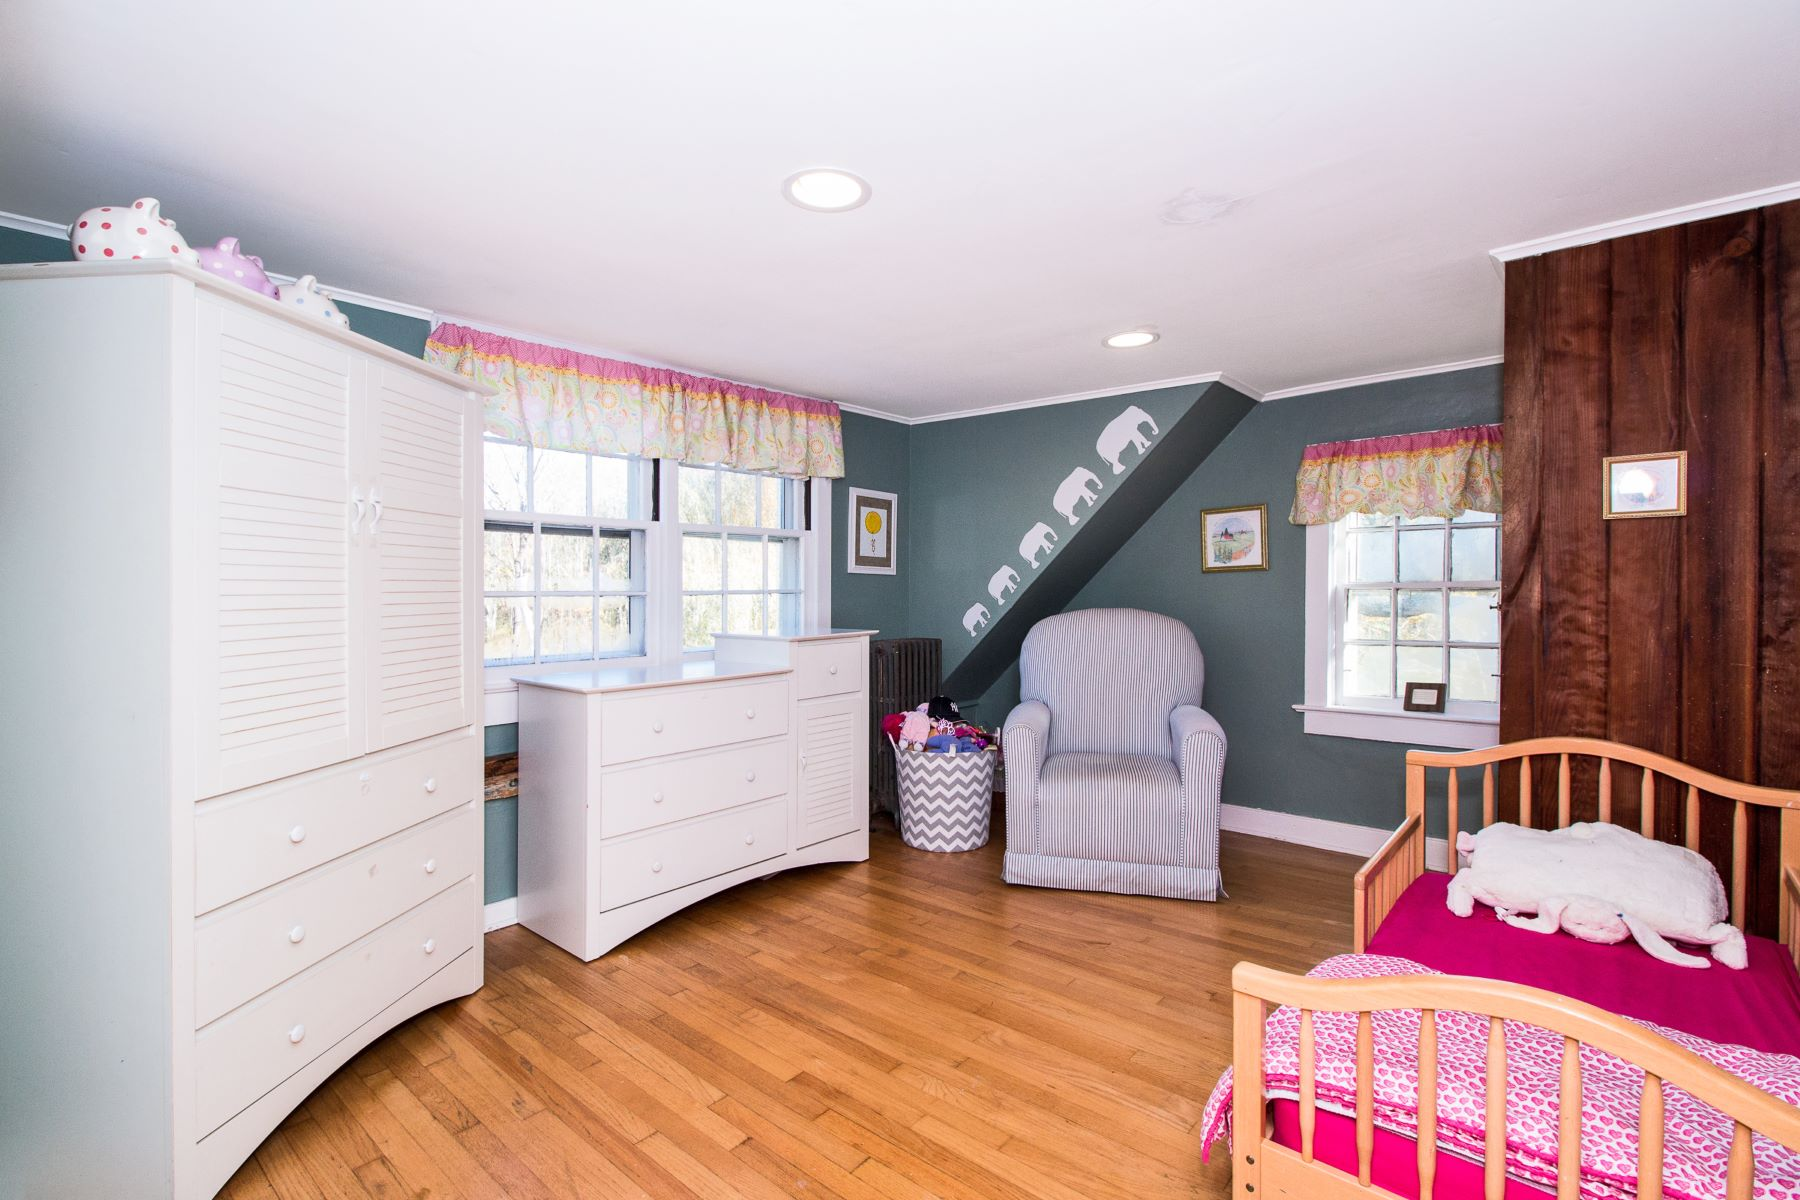 Additional photo for property listing at Charming Antique Colonial 126 Whitenack Road Basking Ridge, New Jersey 07920 United States